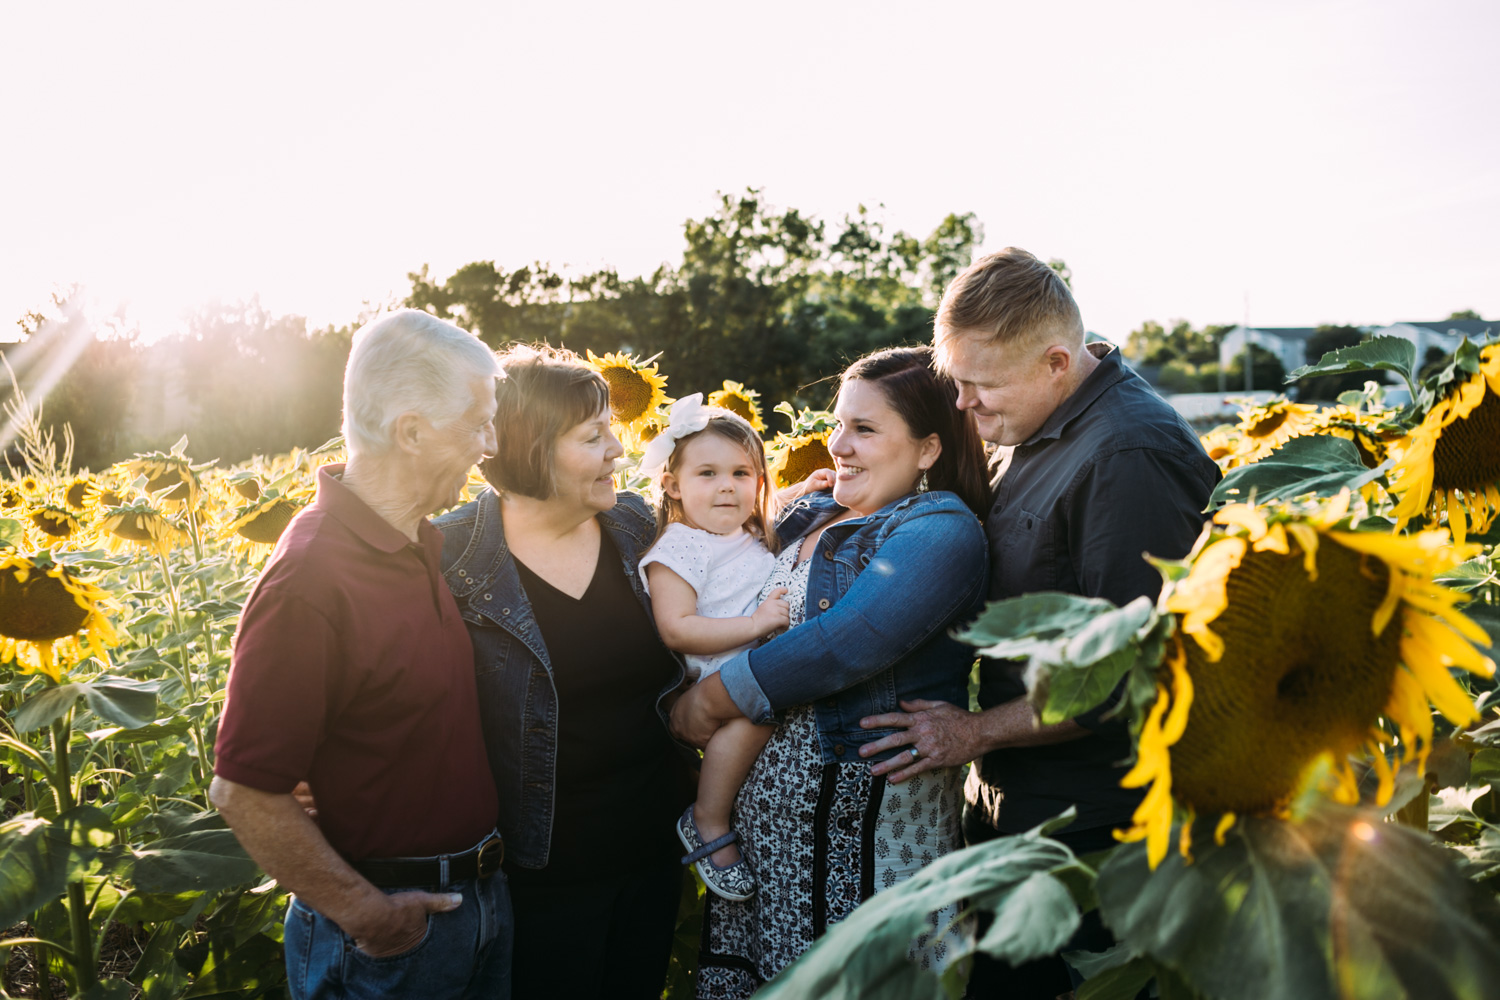 Family with grandparents in the sunflower field at Britt's Garden Acres and Farm during a Fall Family Photo Mini Session in Manhattan, Kansas. Captured by Renee McDaniel Photography.